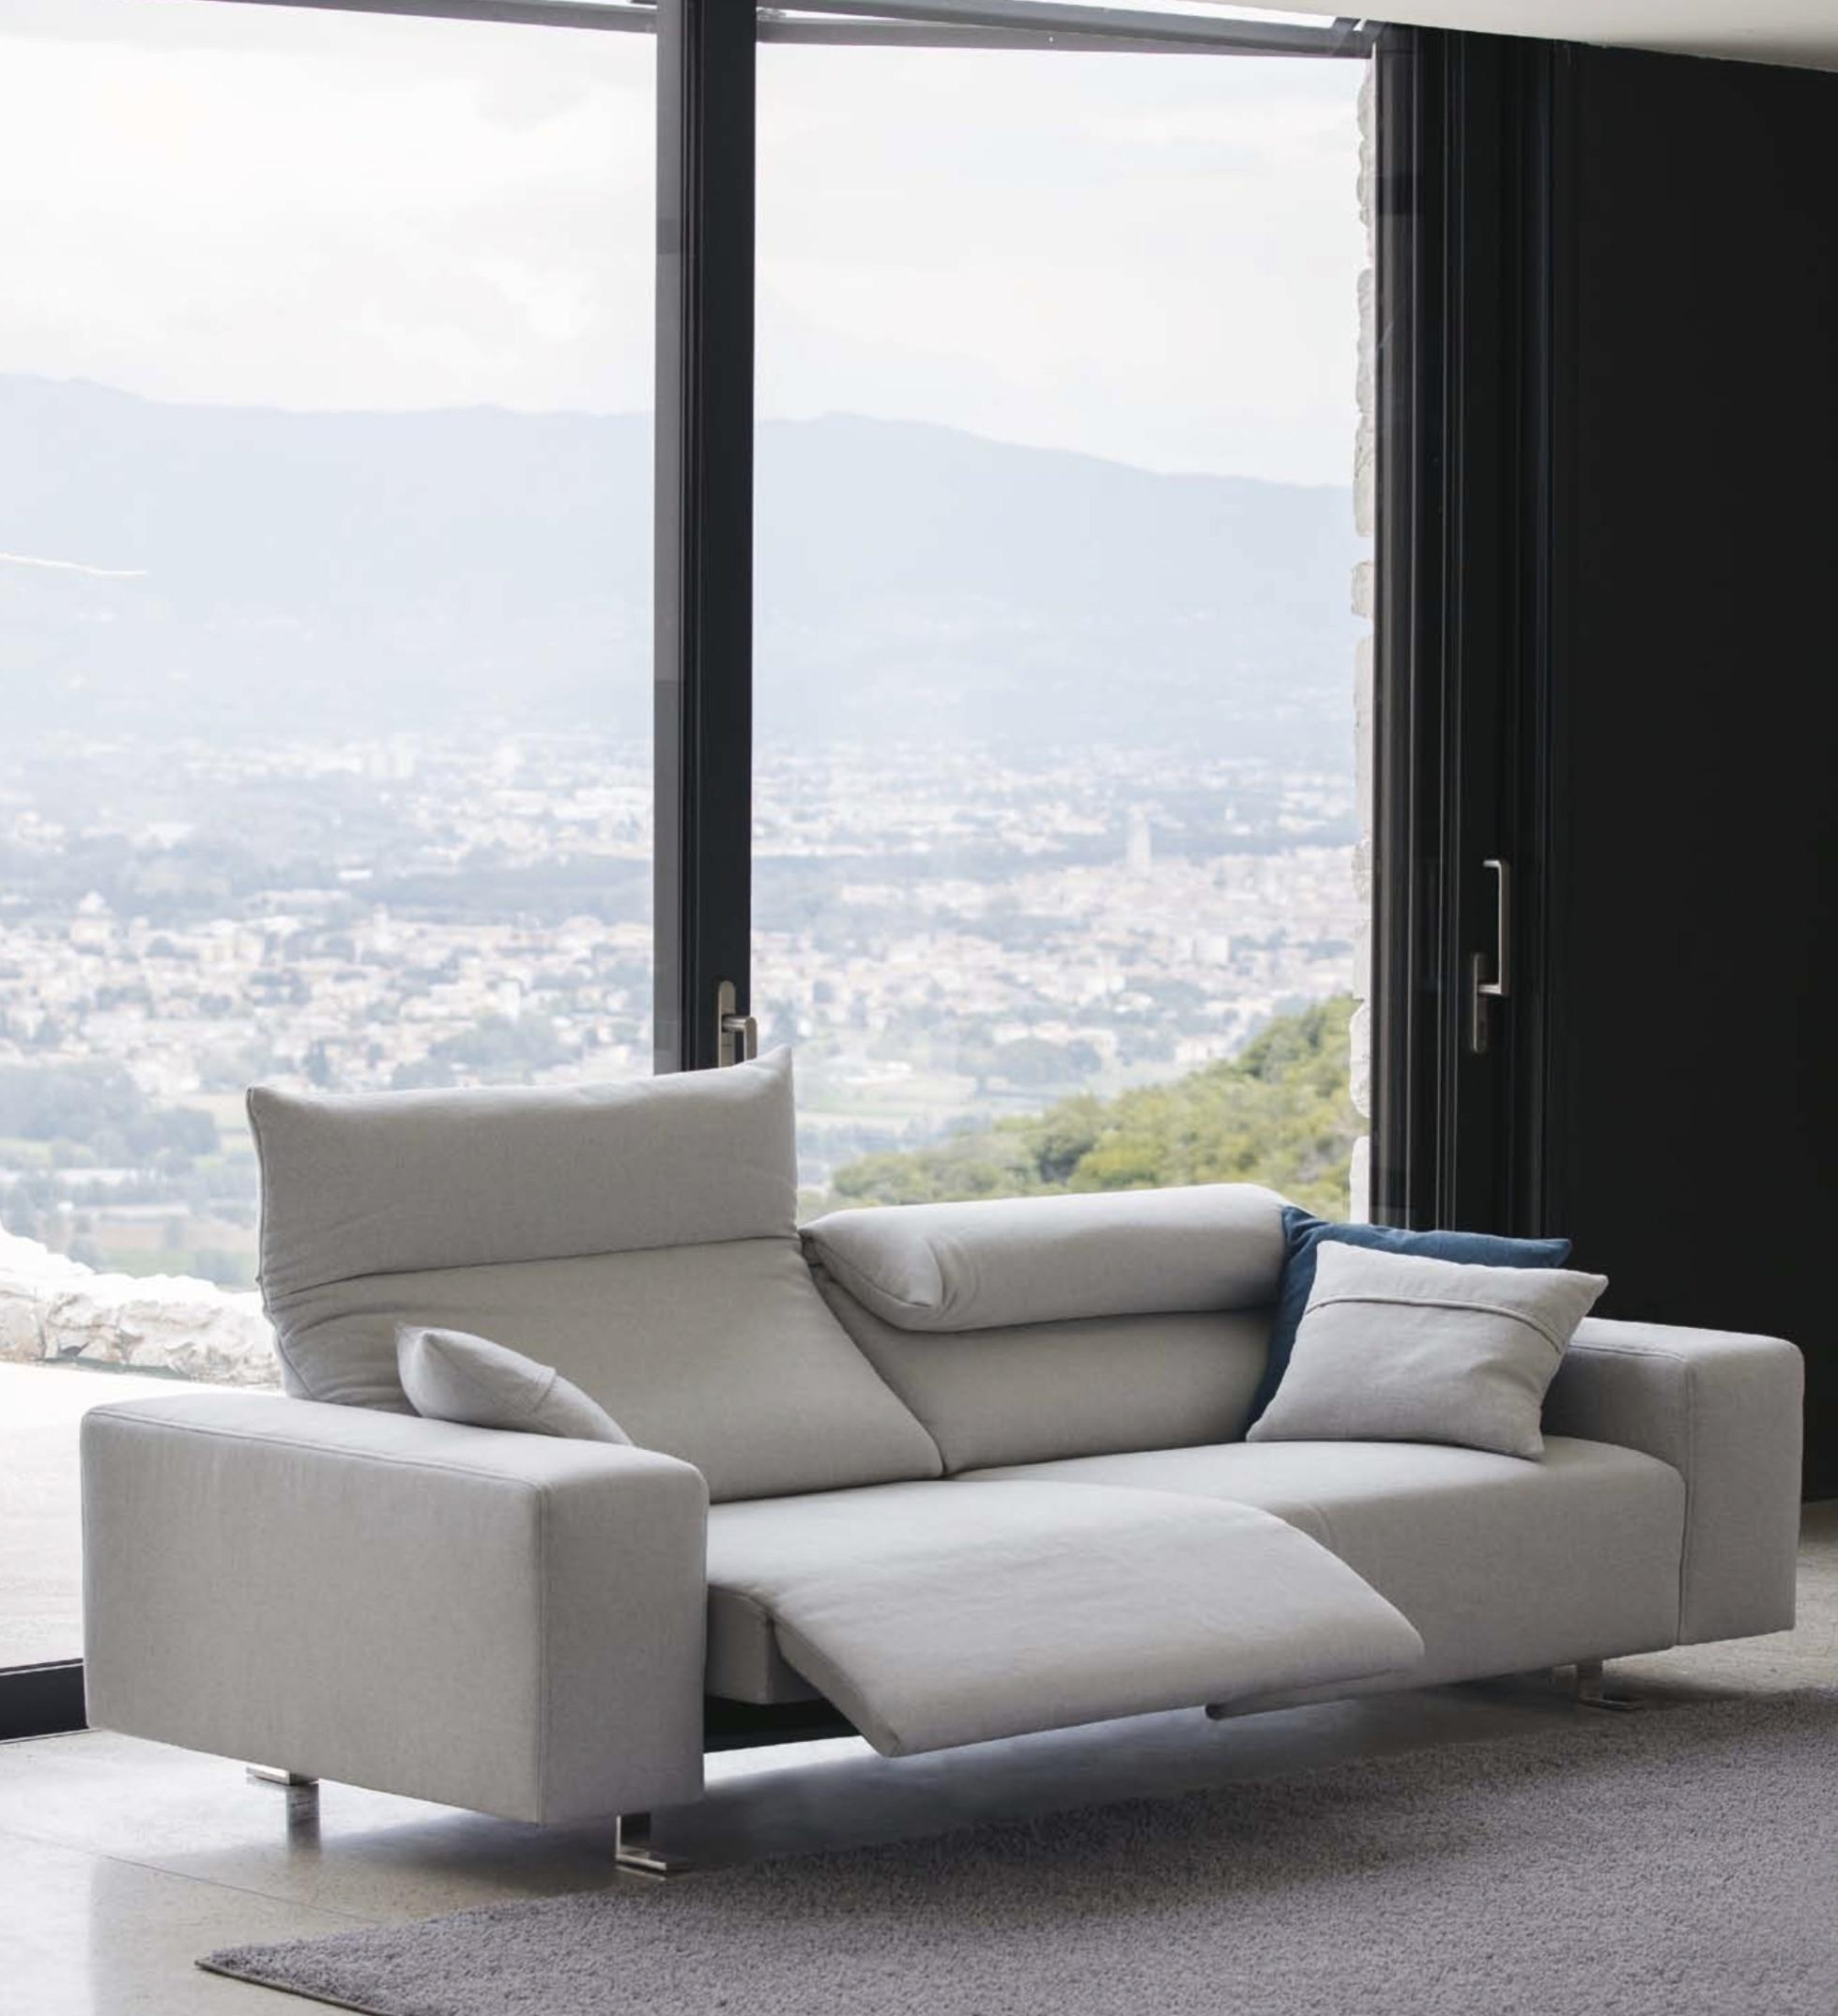 Italian Sofas At Momentoitalia – Modern Sofas,designer Sofas Pertaining To Modern Sofas (View 5 of 20)